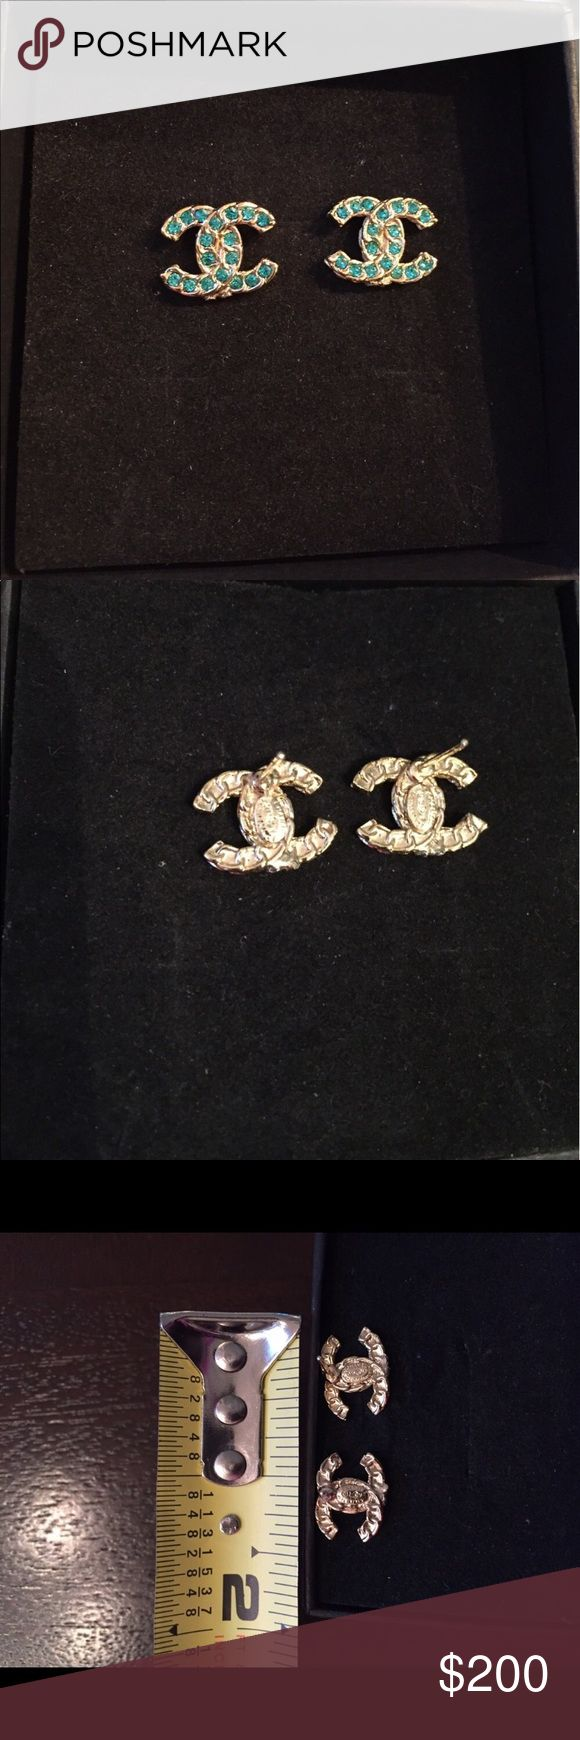 Chanel Stud Earrings I got these from a friend and turns out they are not the real deal. Comes with earring backs and box. The are very petite on the ear. CHANEL Accessories